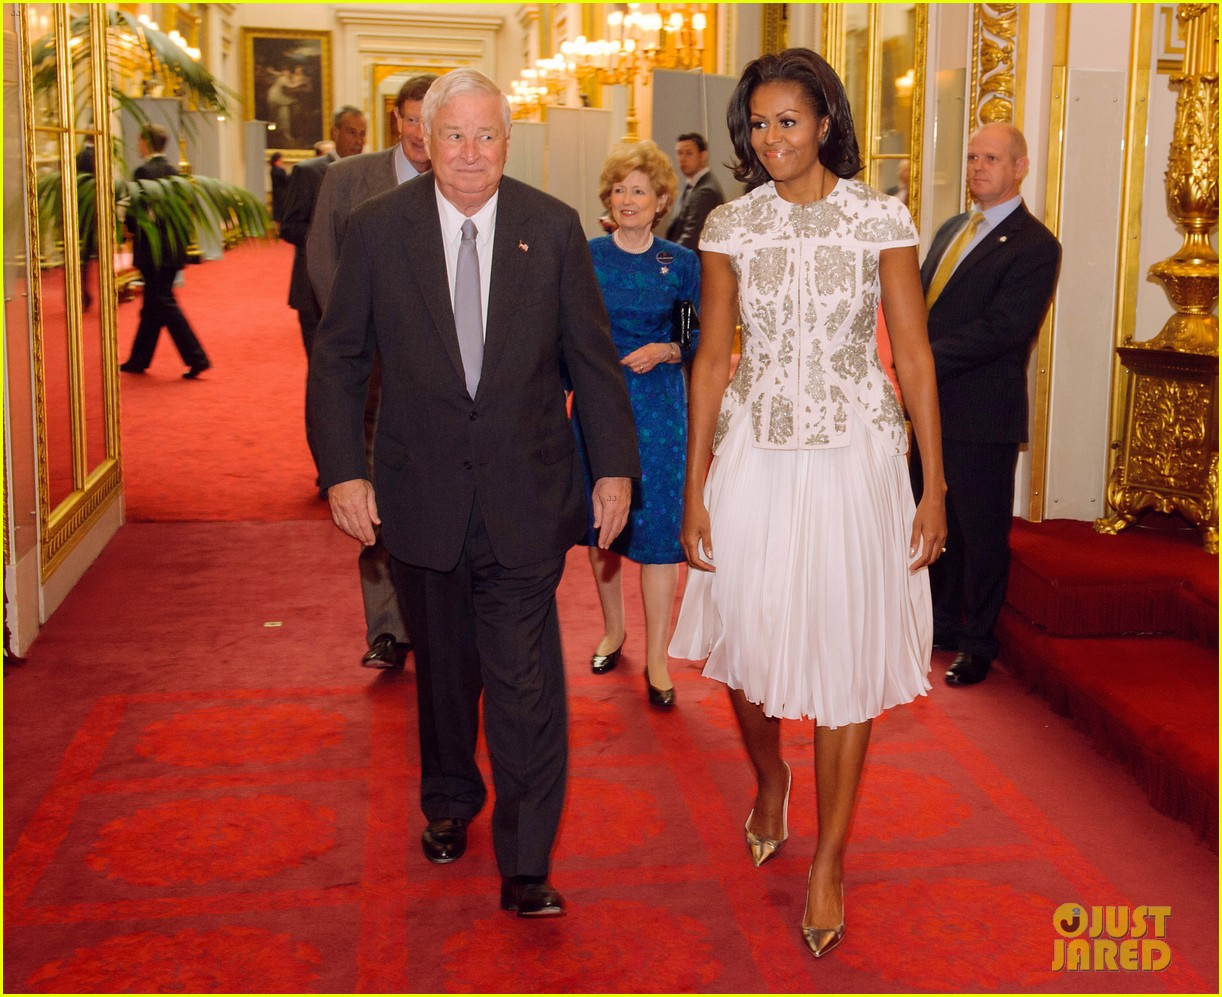 duchess kate michelle obama heads of state reception 012692905